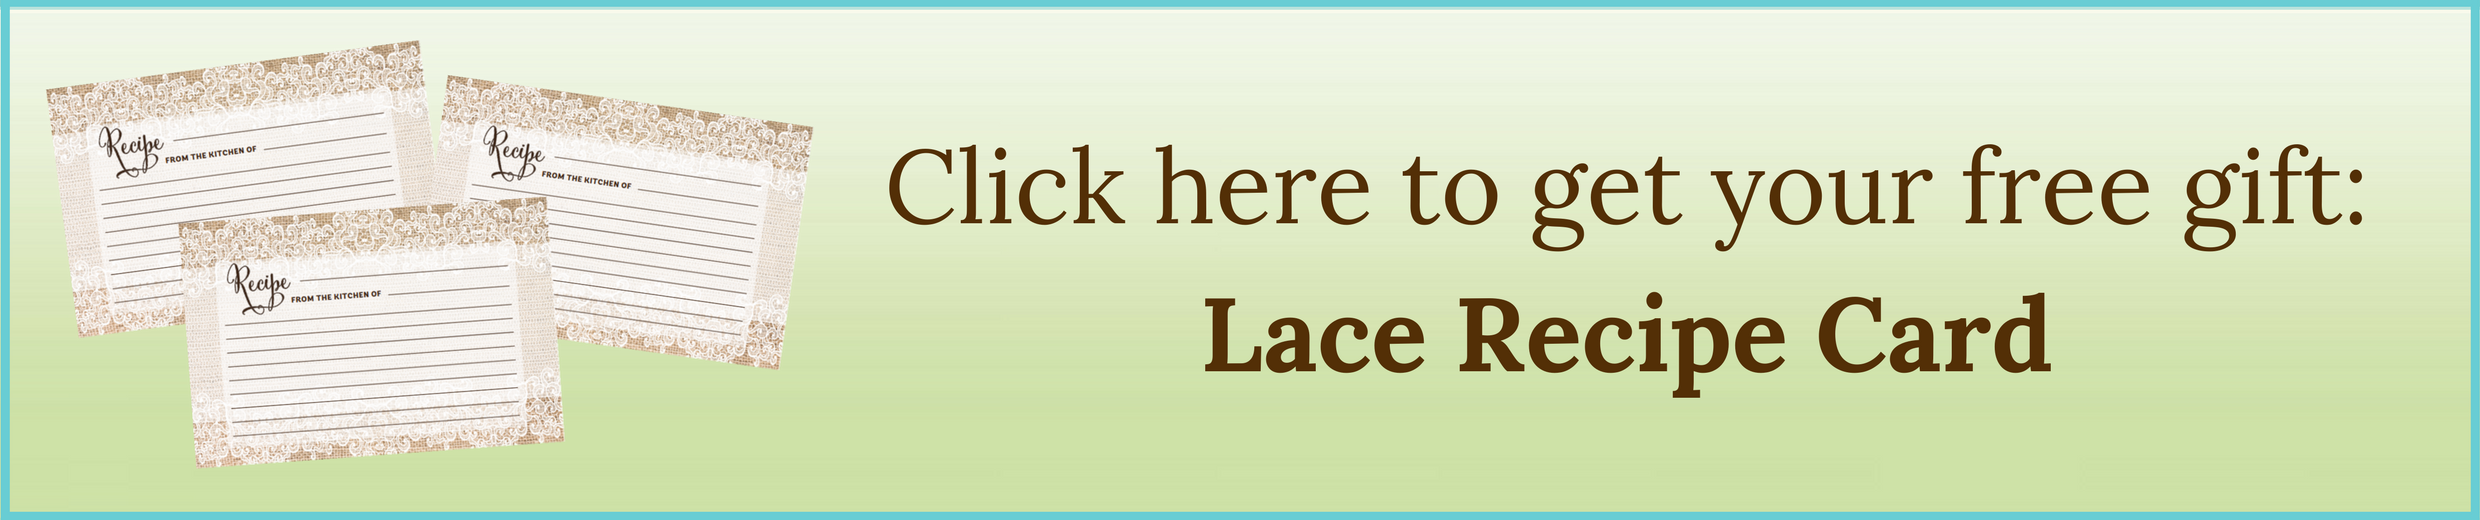 Click here to get your Lace Recipe Card